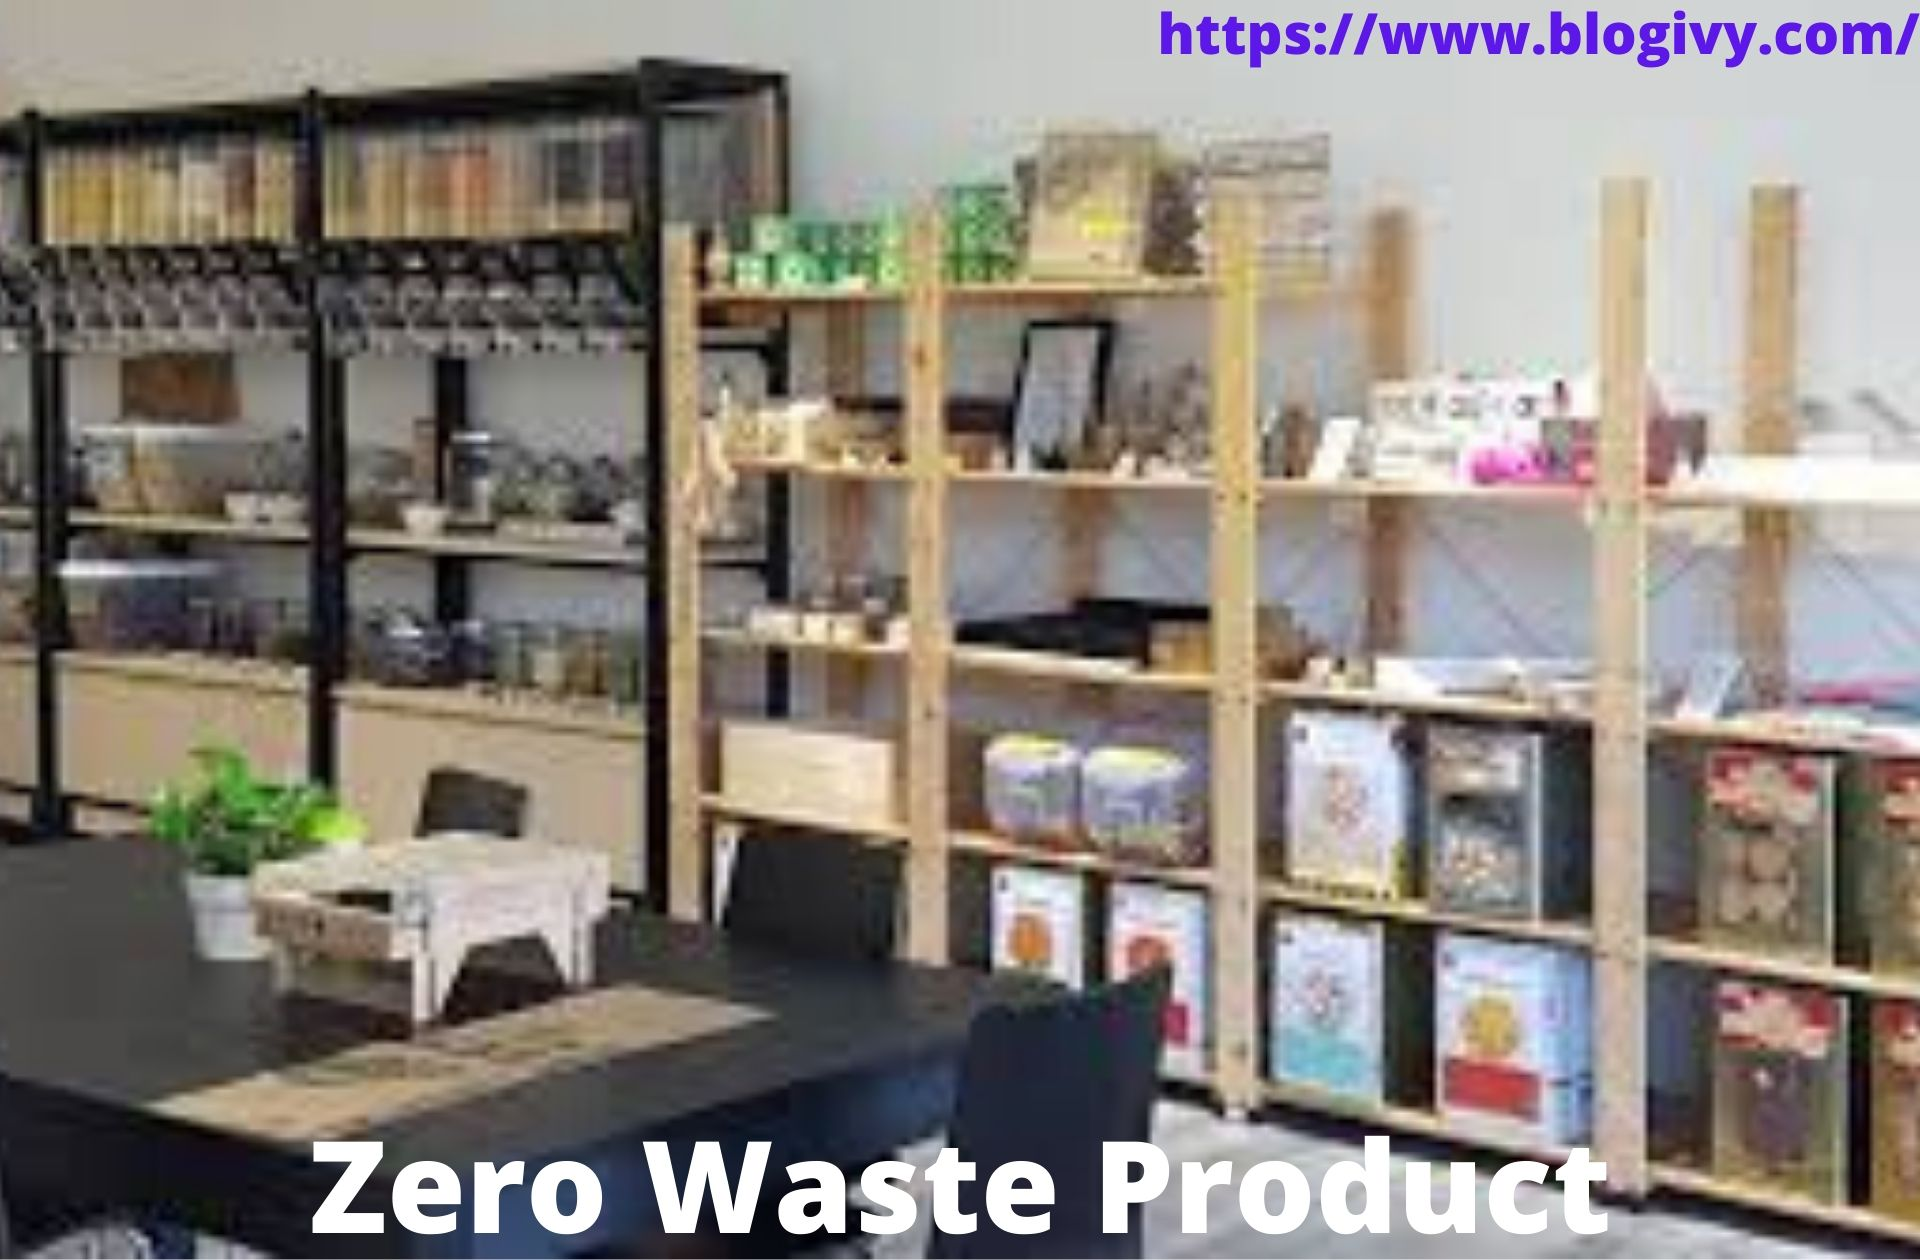 zero waste product we can use in our life style